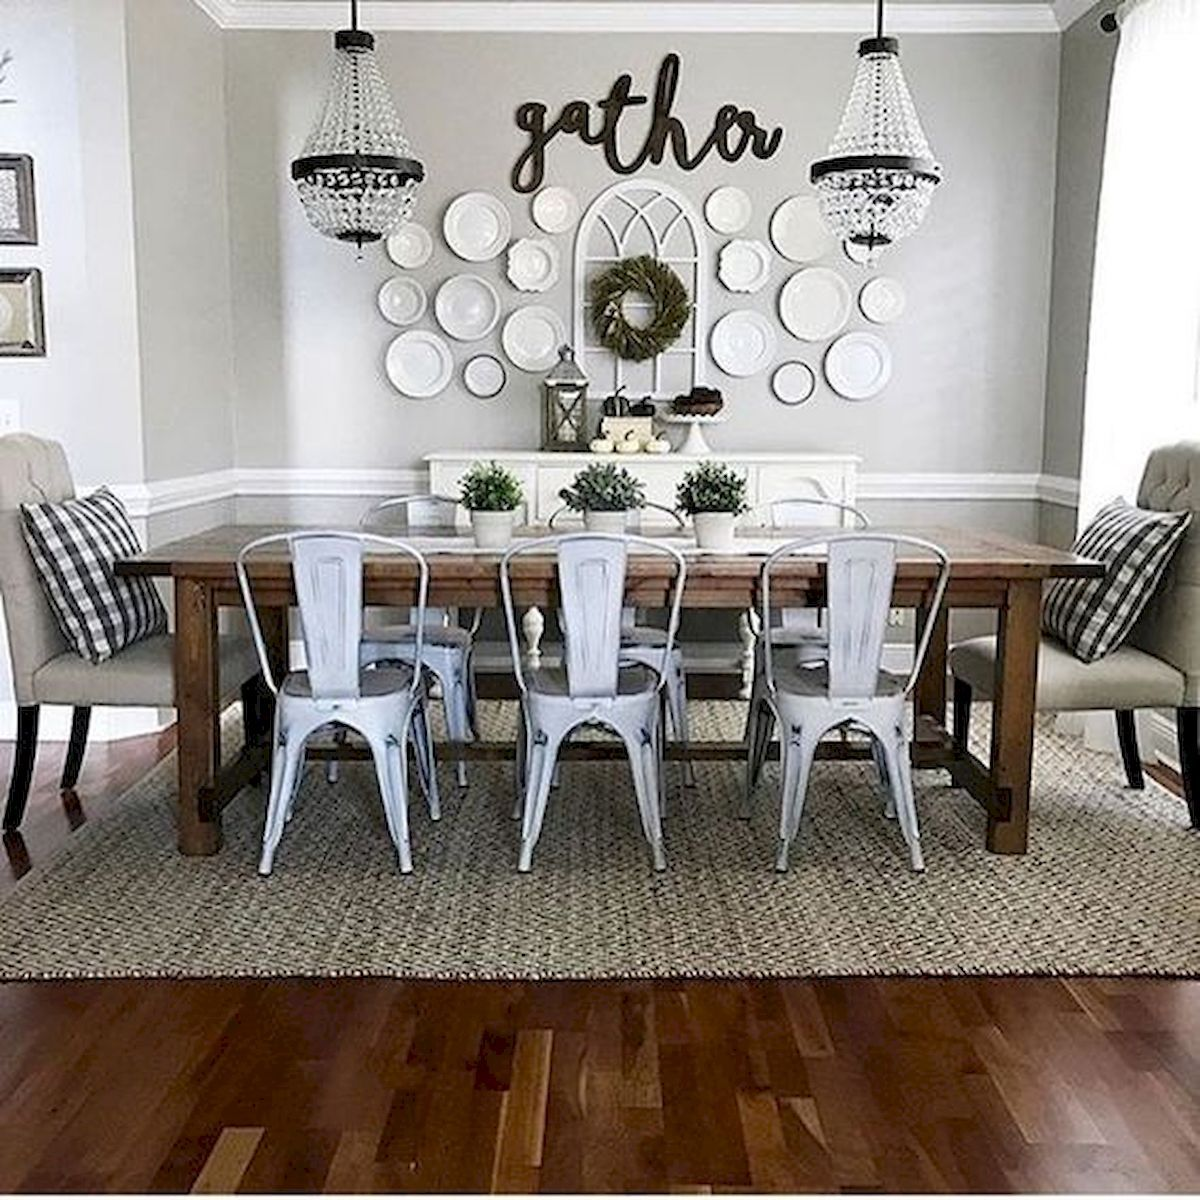 33 Adorable Dining Room Wall Art Ideas And Decor33decor In 2020